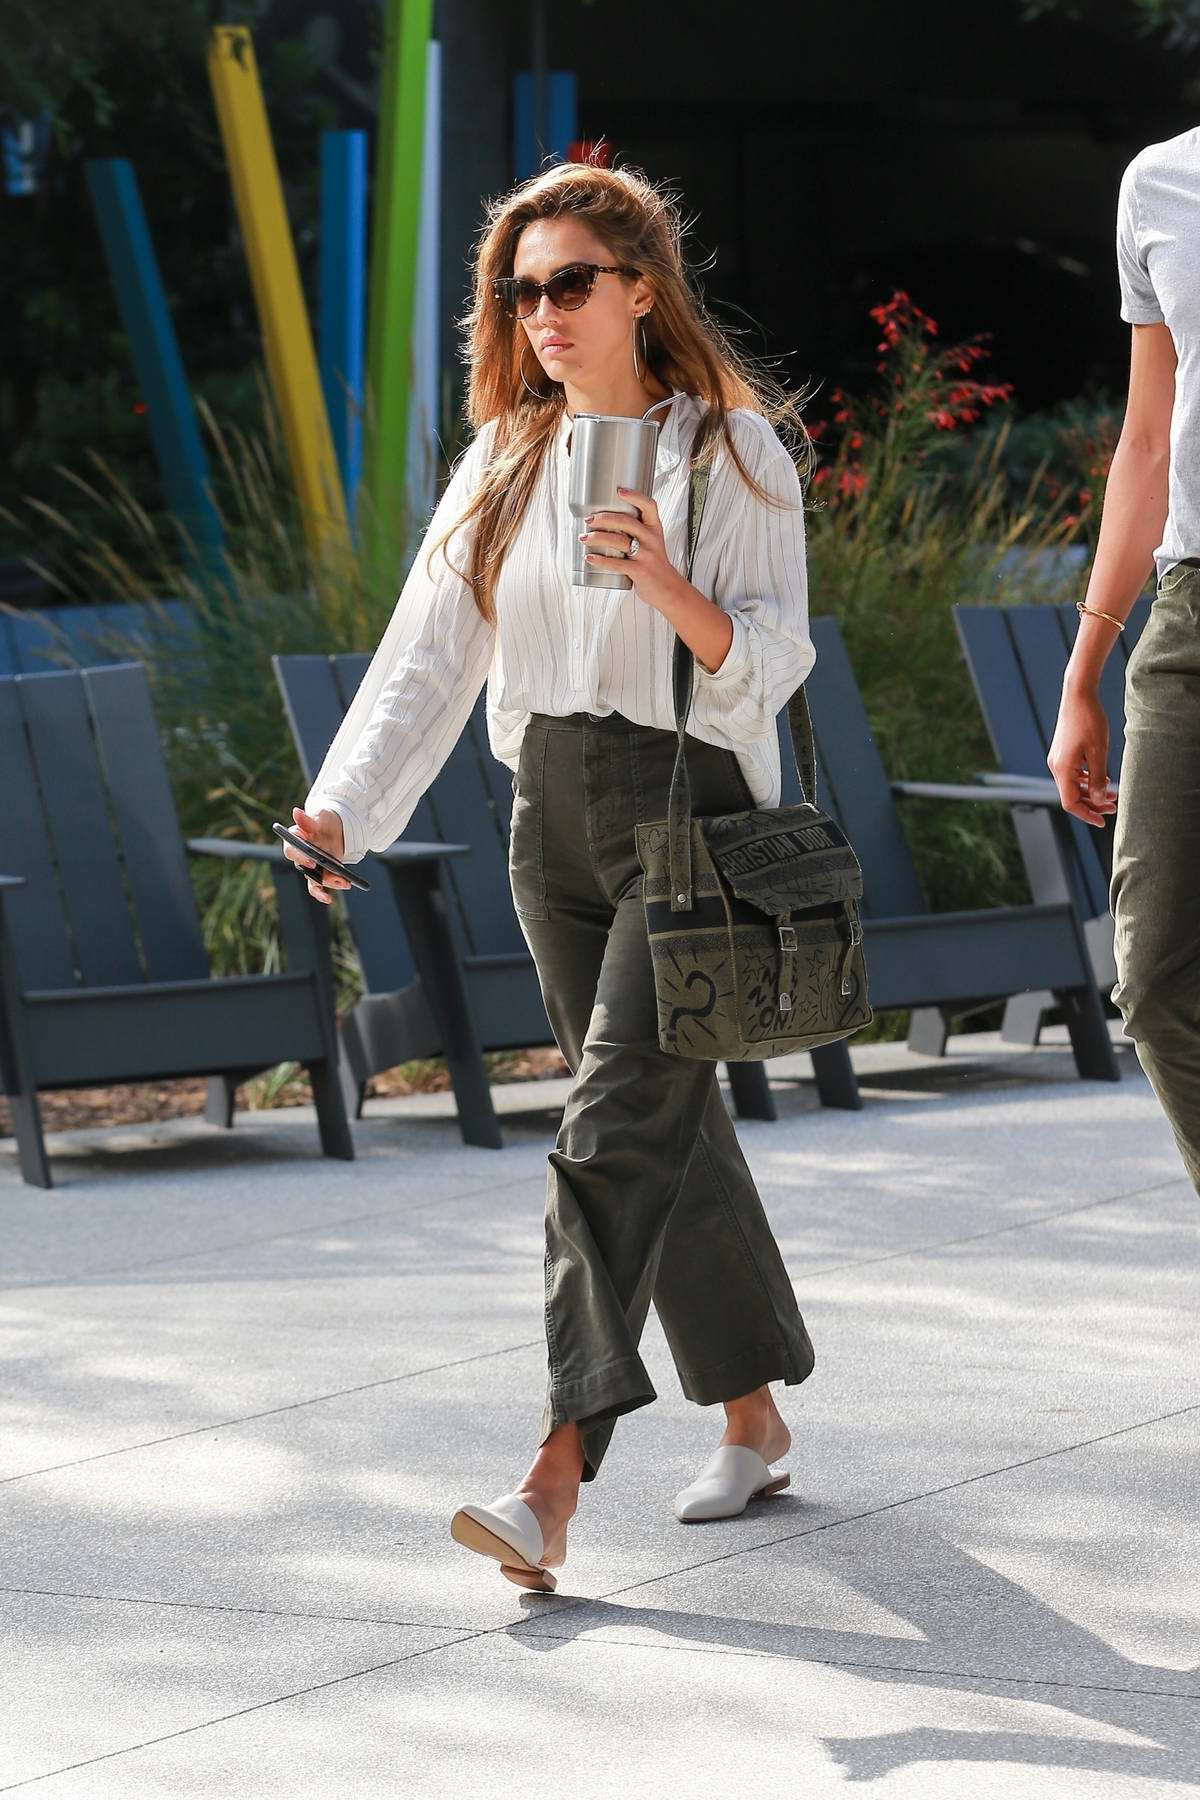 Jessica Alba dressed for business as she heads to the office in Los Angeles